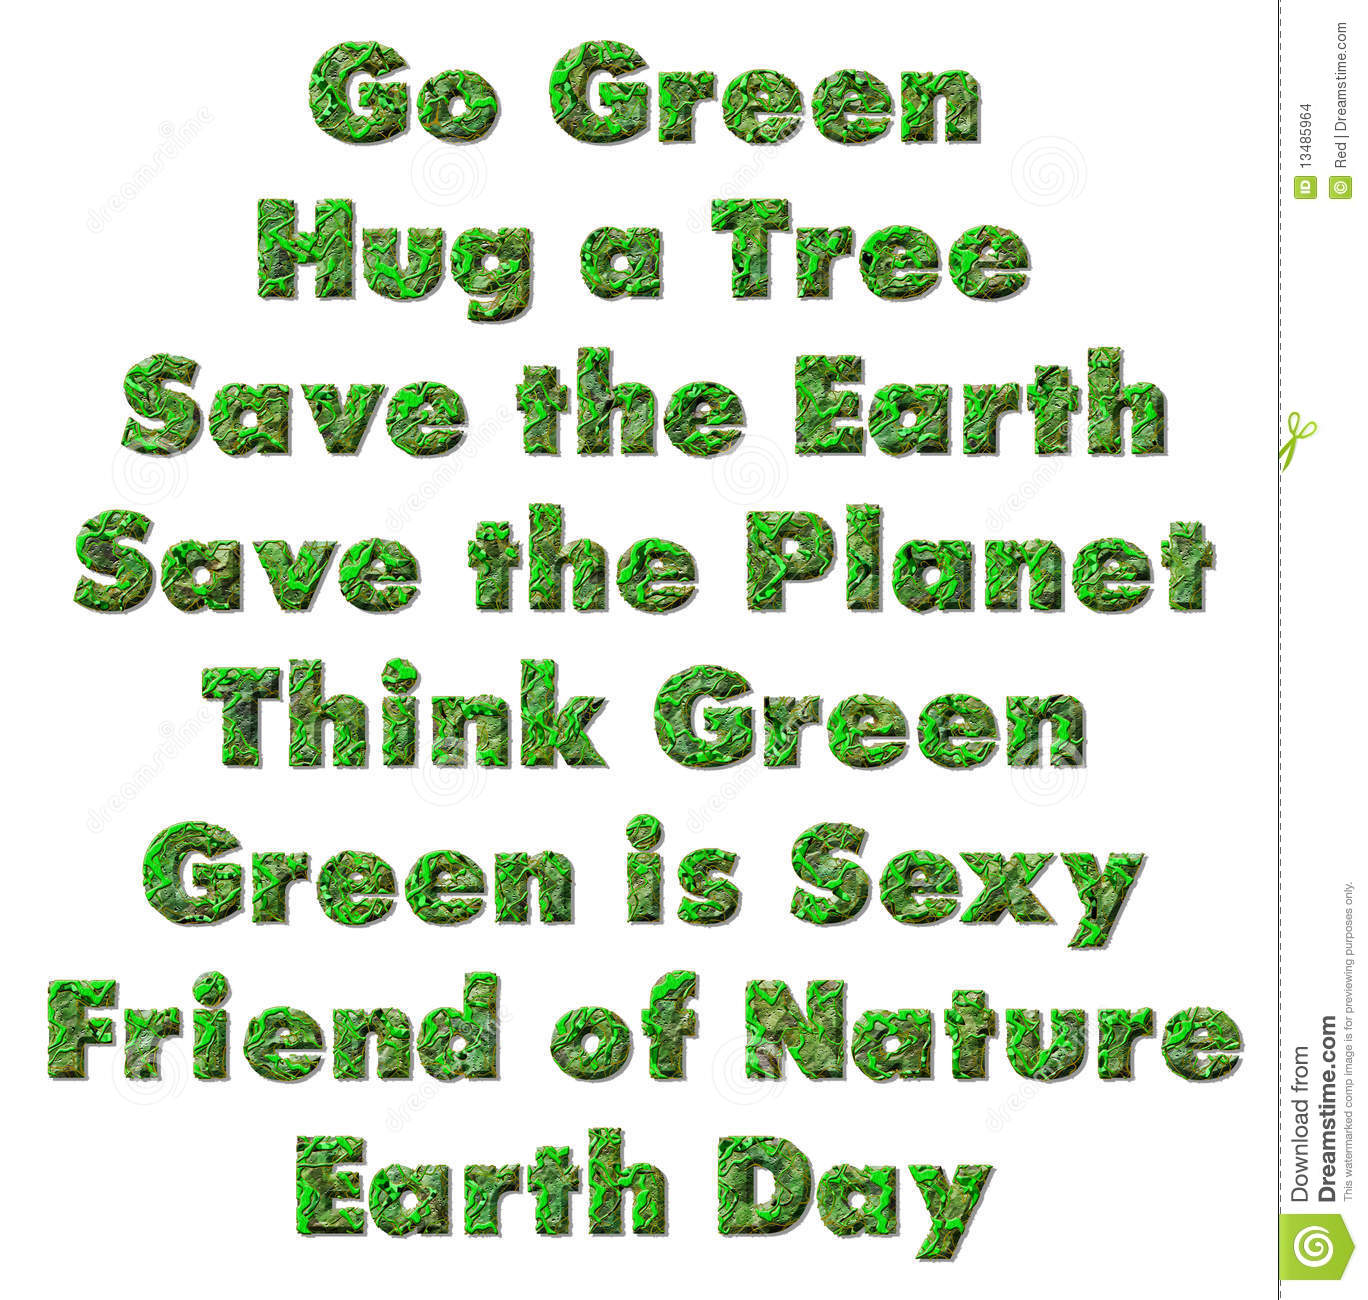 Save Environment Slogans in English http://www.dreamstime.com/stock-images-green-environment-words-image13485964